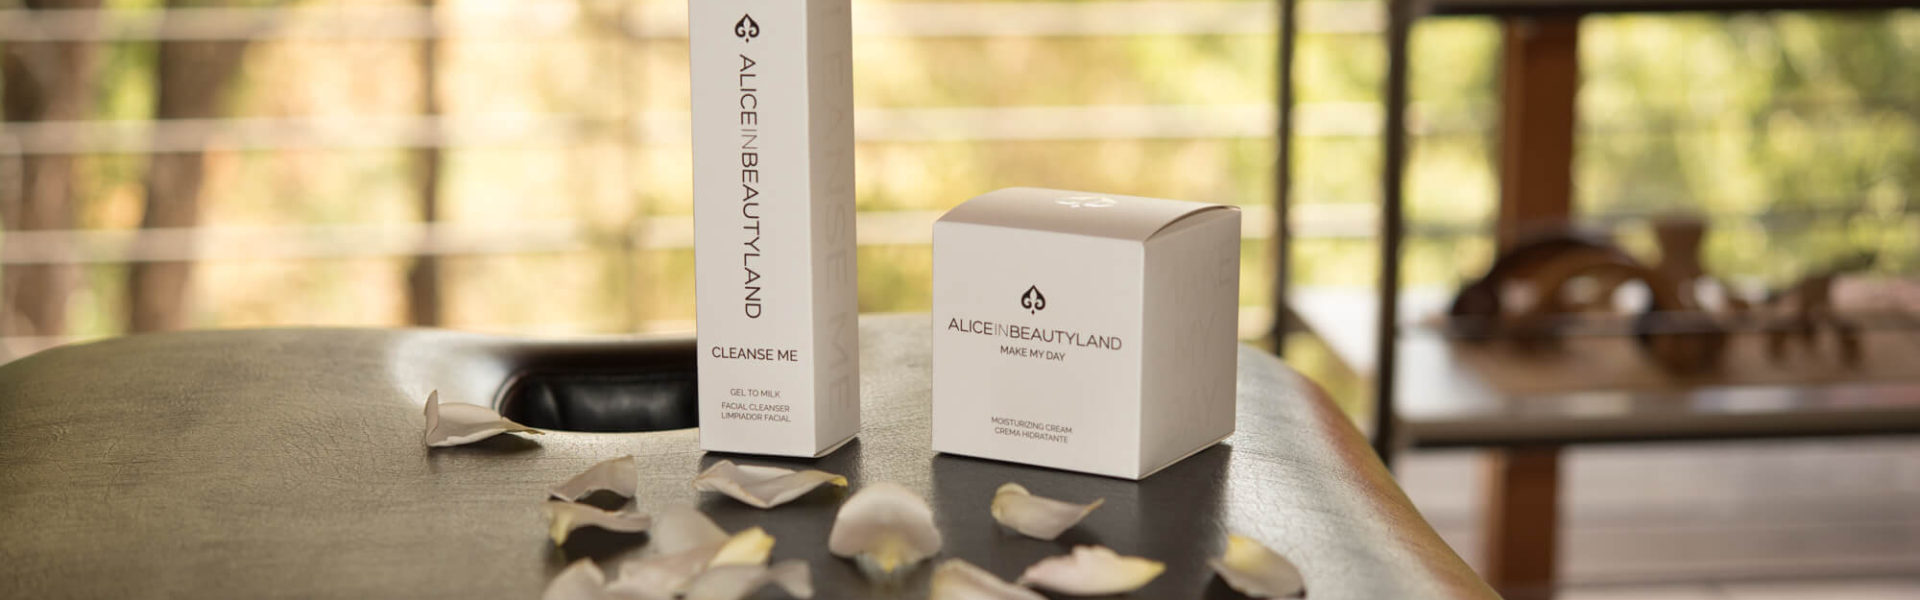 Balnearios y Spas-Alice in Beautyland-Skincare